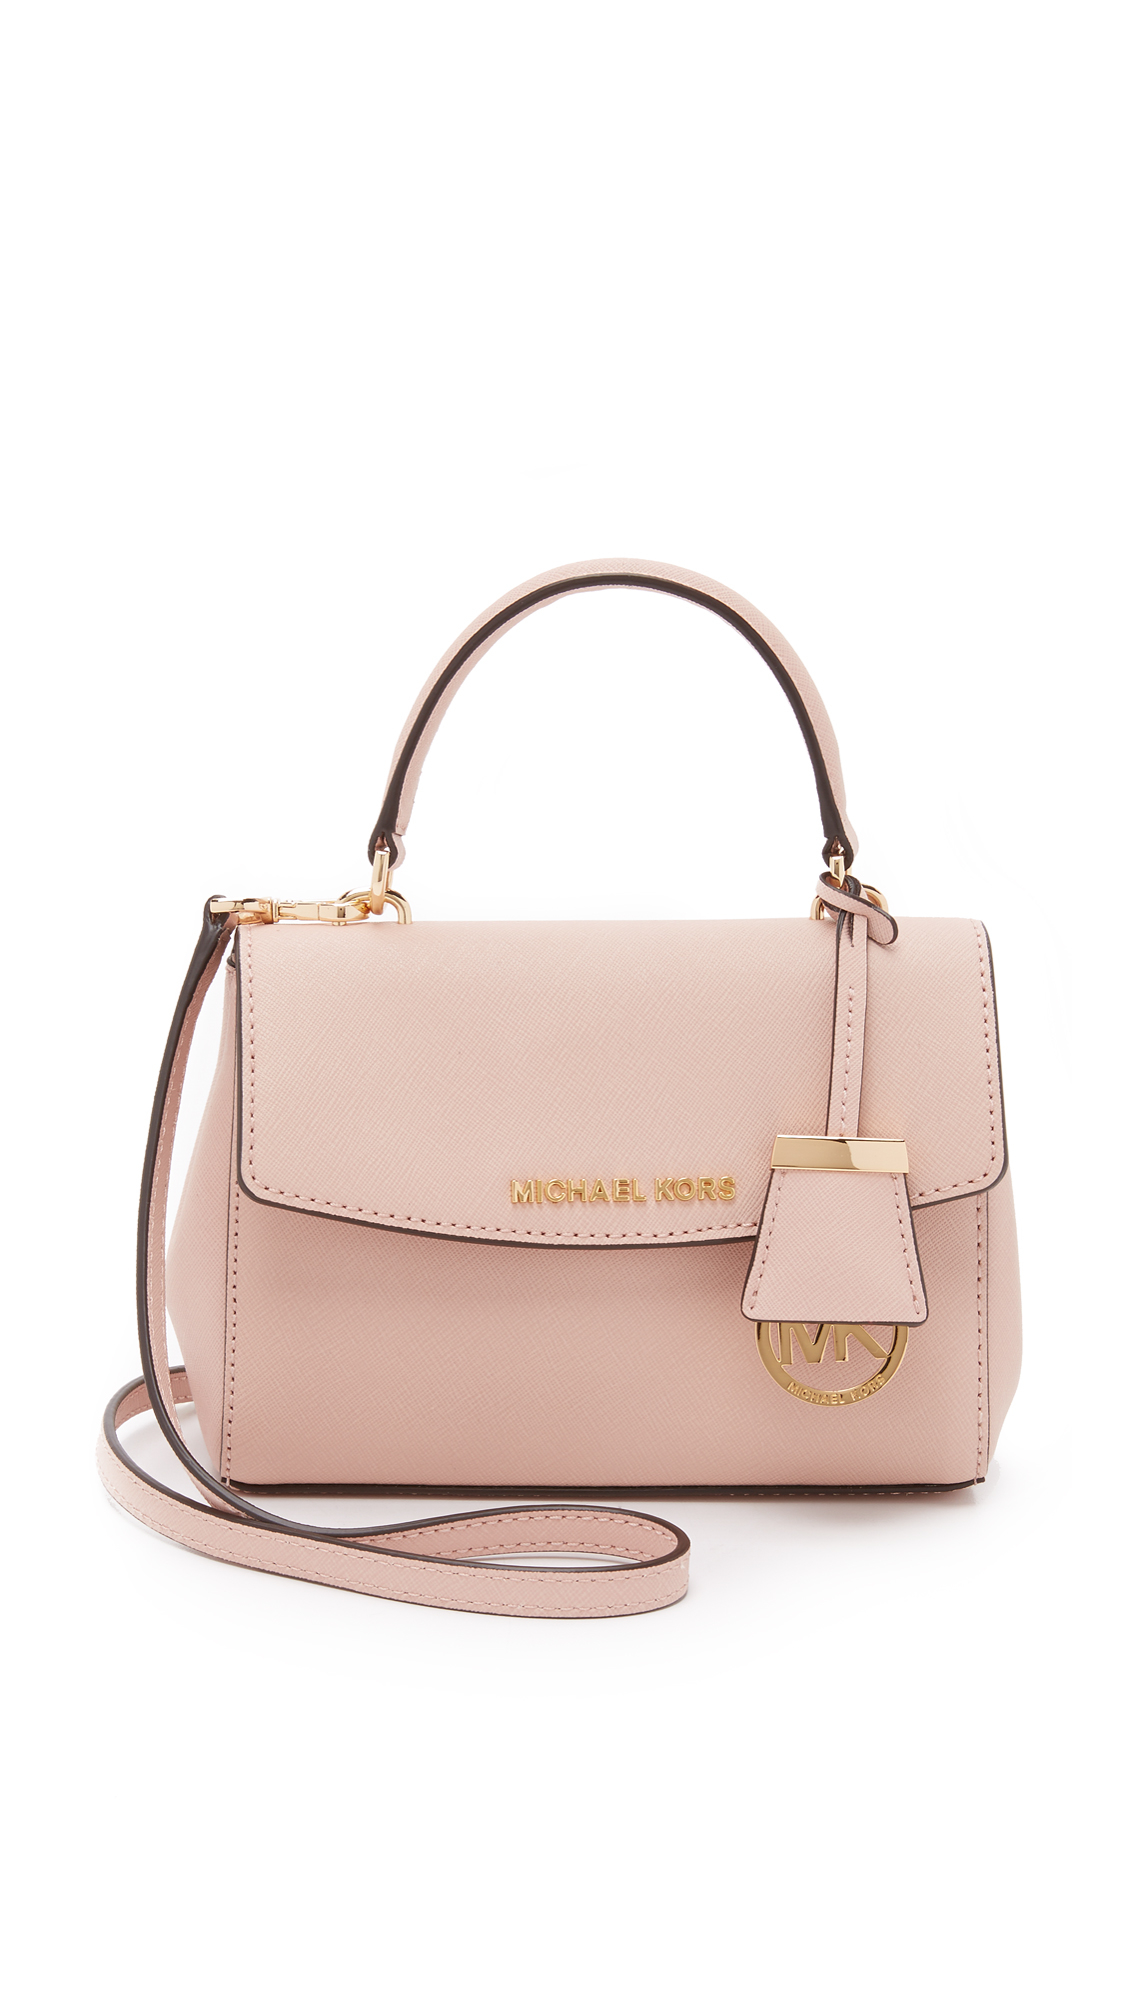 3c16964ad063 MICHAEL Michael Kors Ava Extra Small Cross Body Bag - Ballet in Pink ...